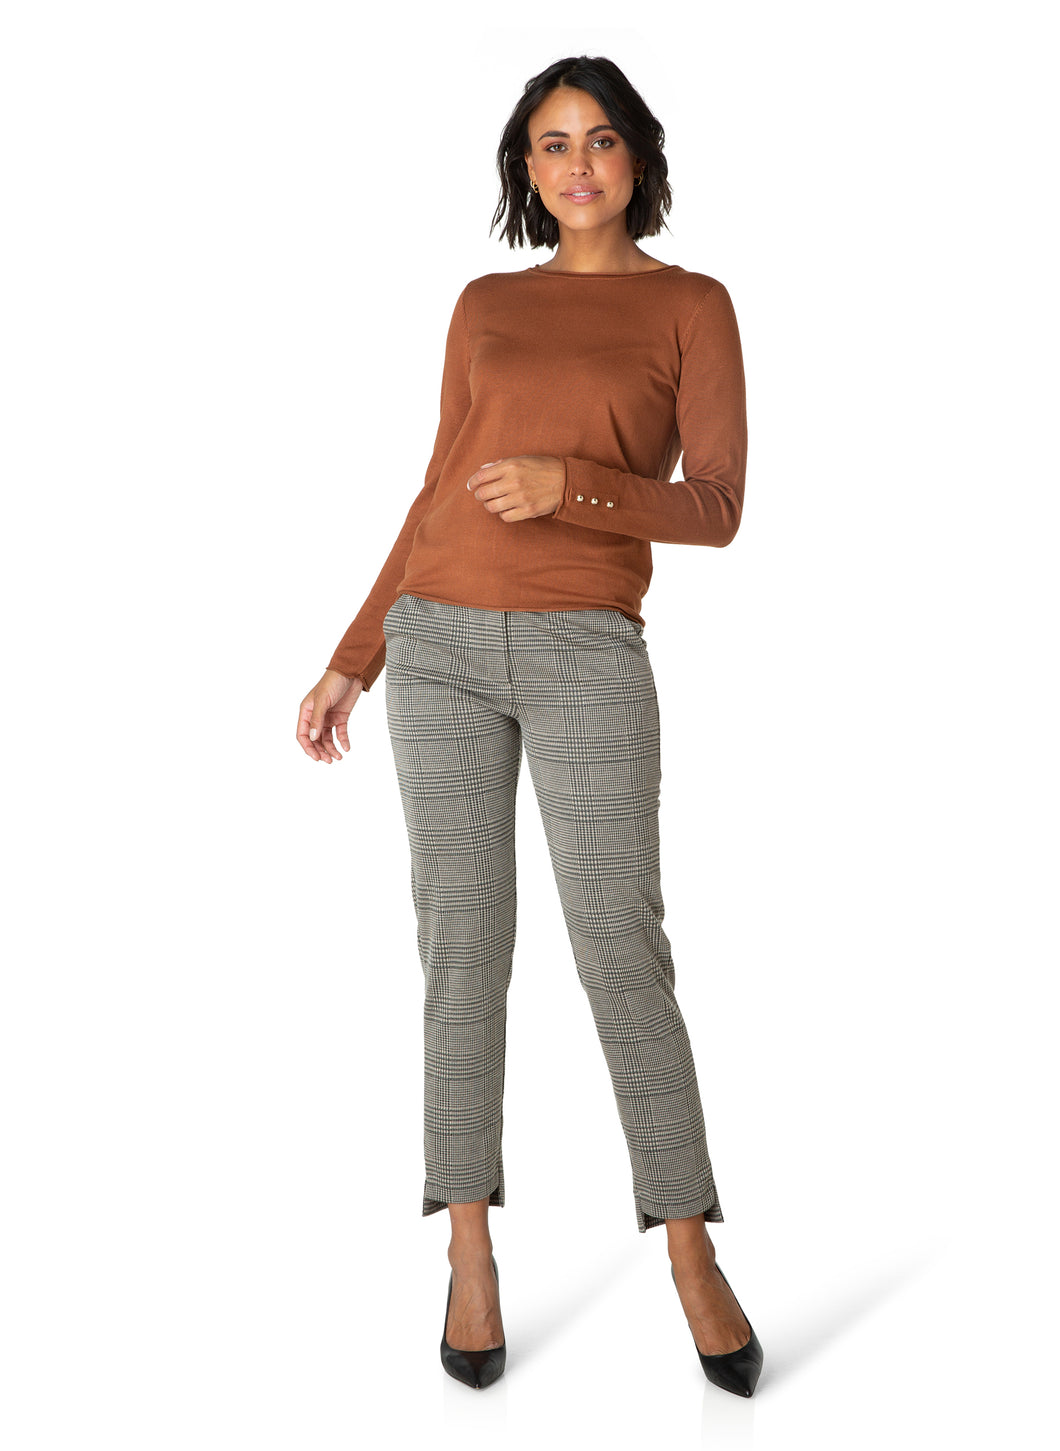 Knit with Sleeve Detail - Dark Camel